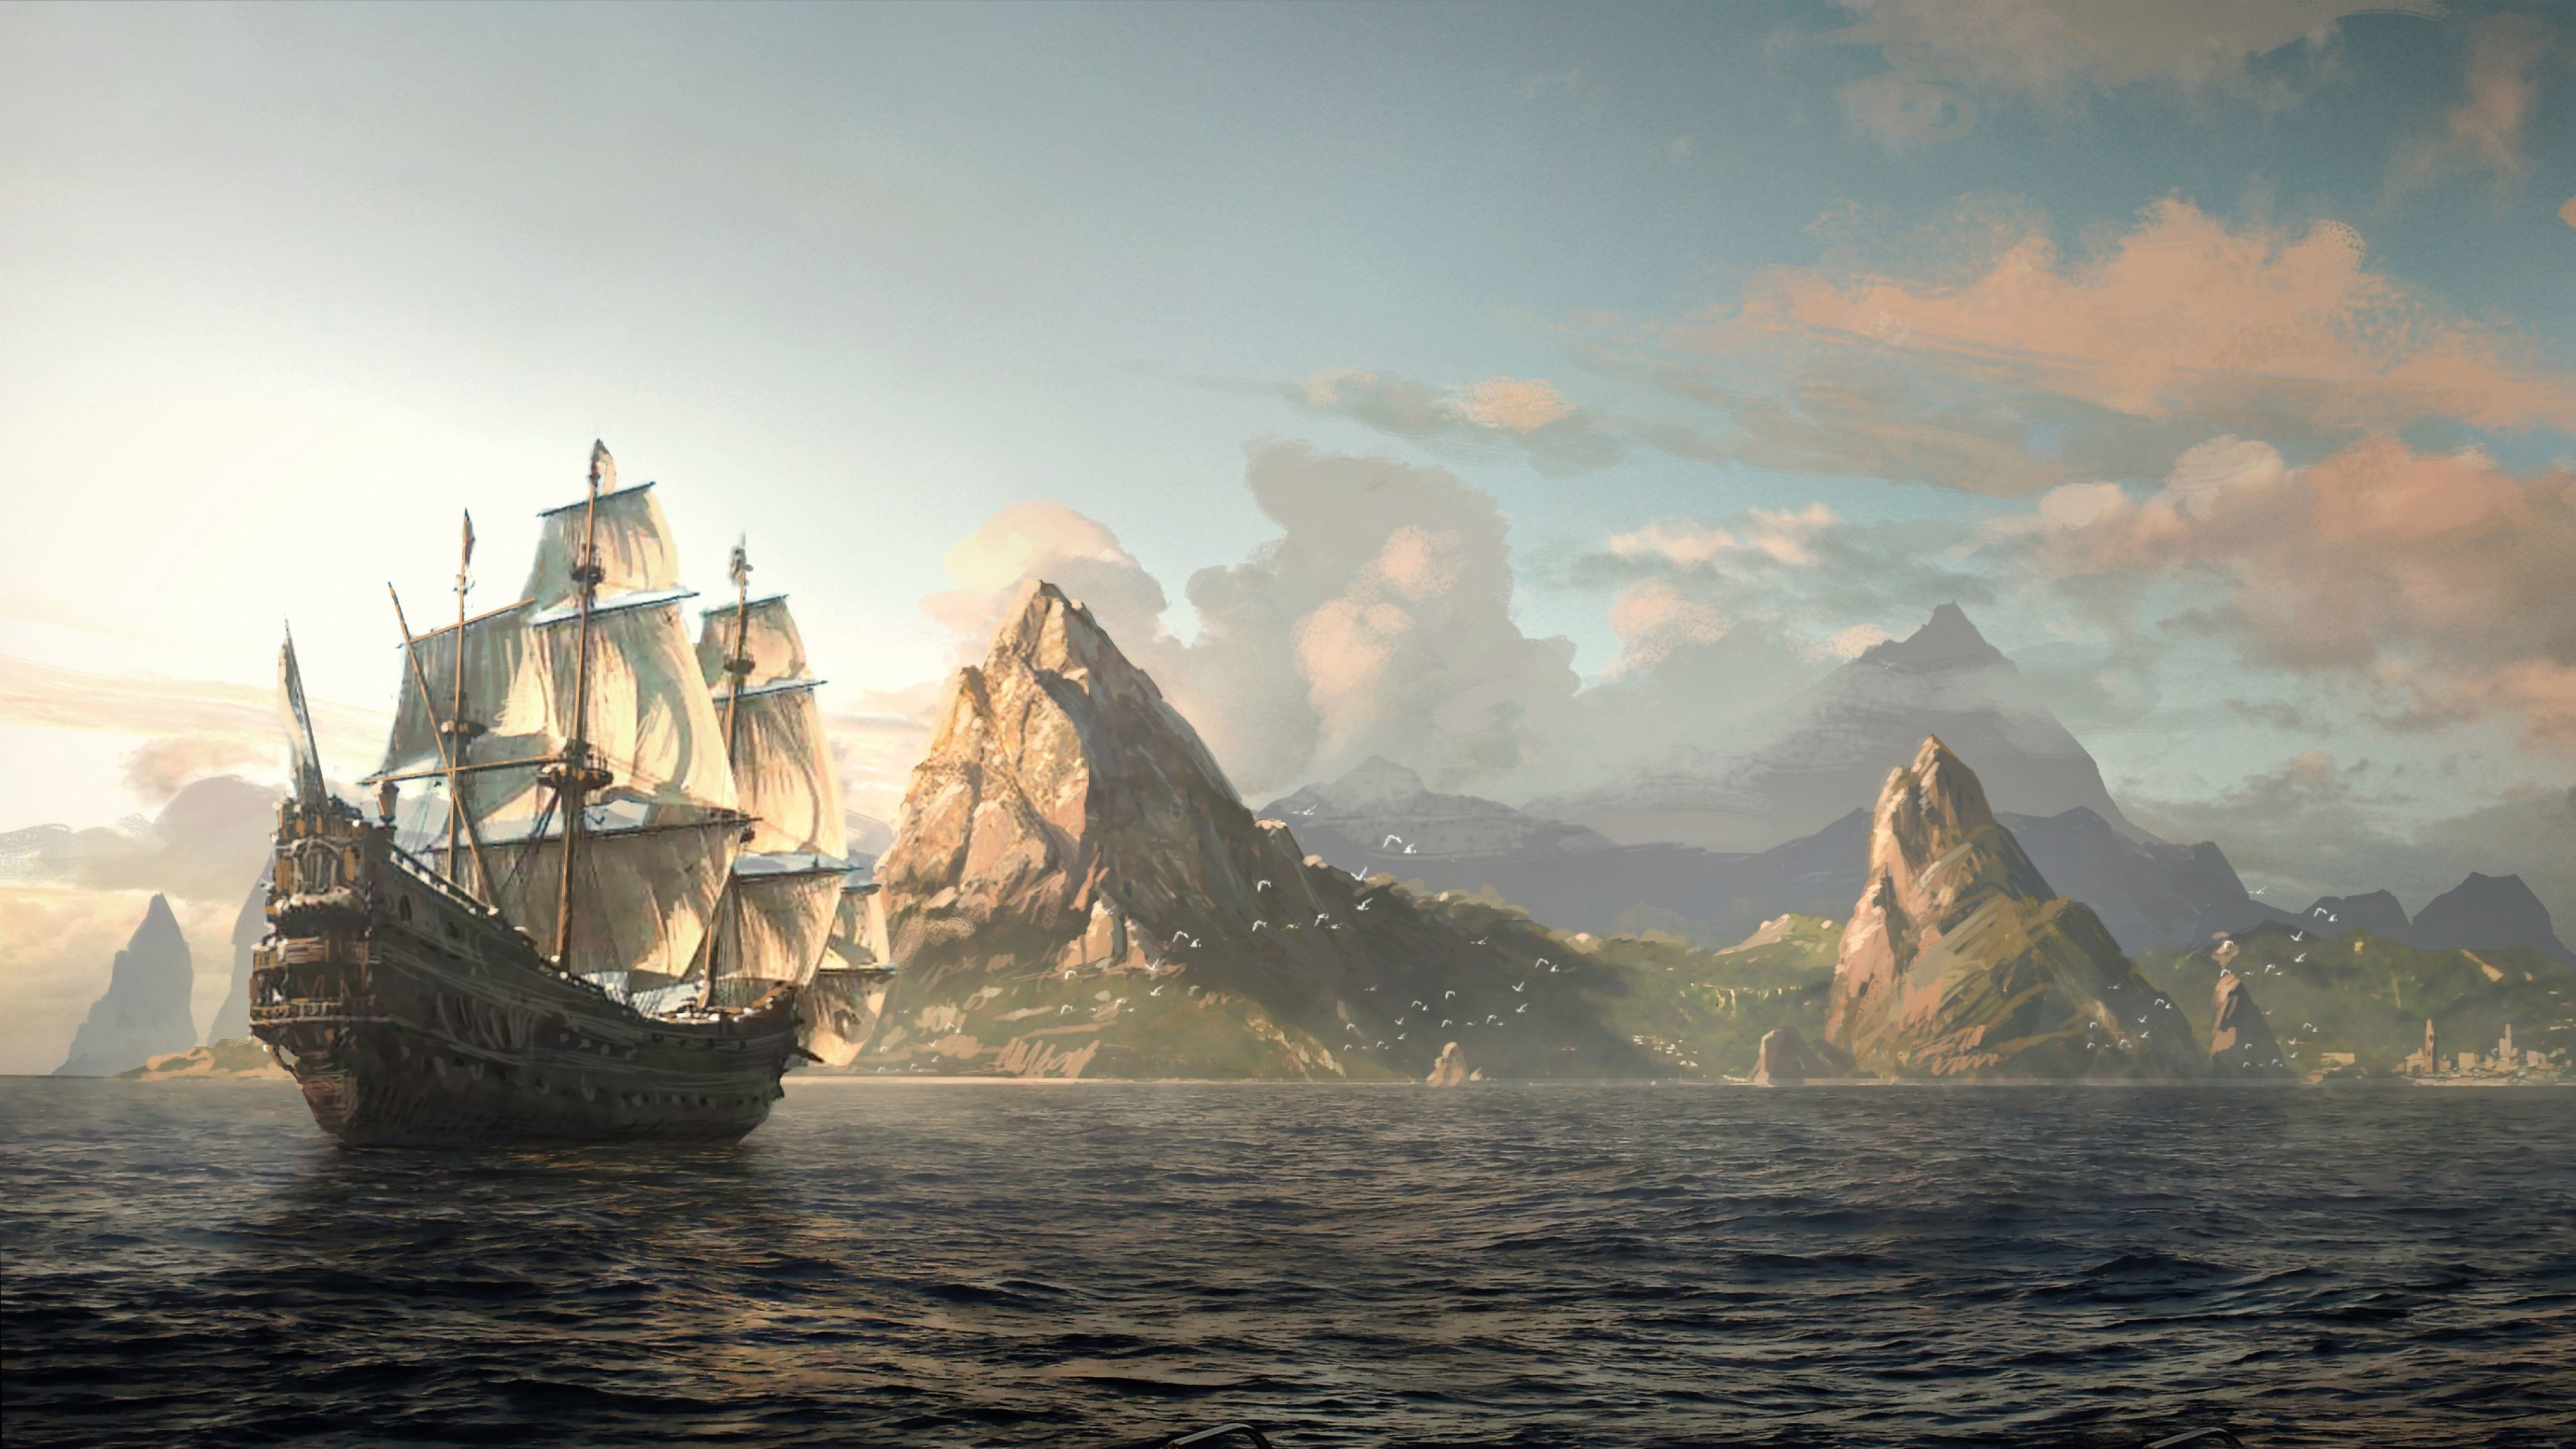 Free Download Pirates Of The Caribbean Wallpapers Top Pirates Of